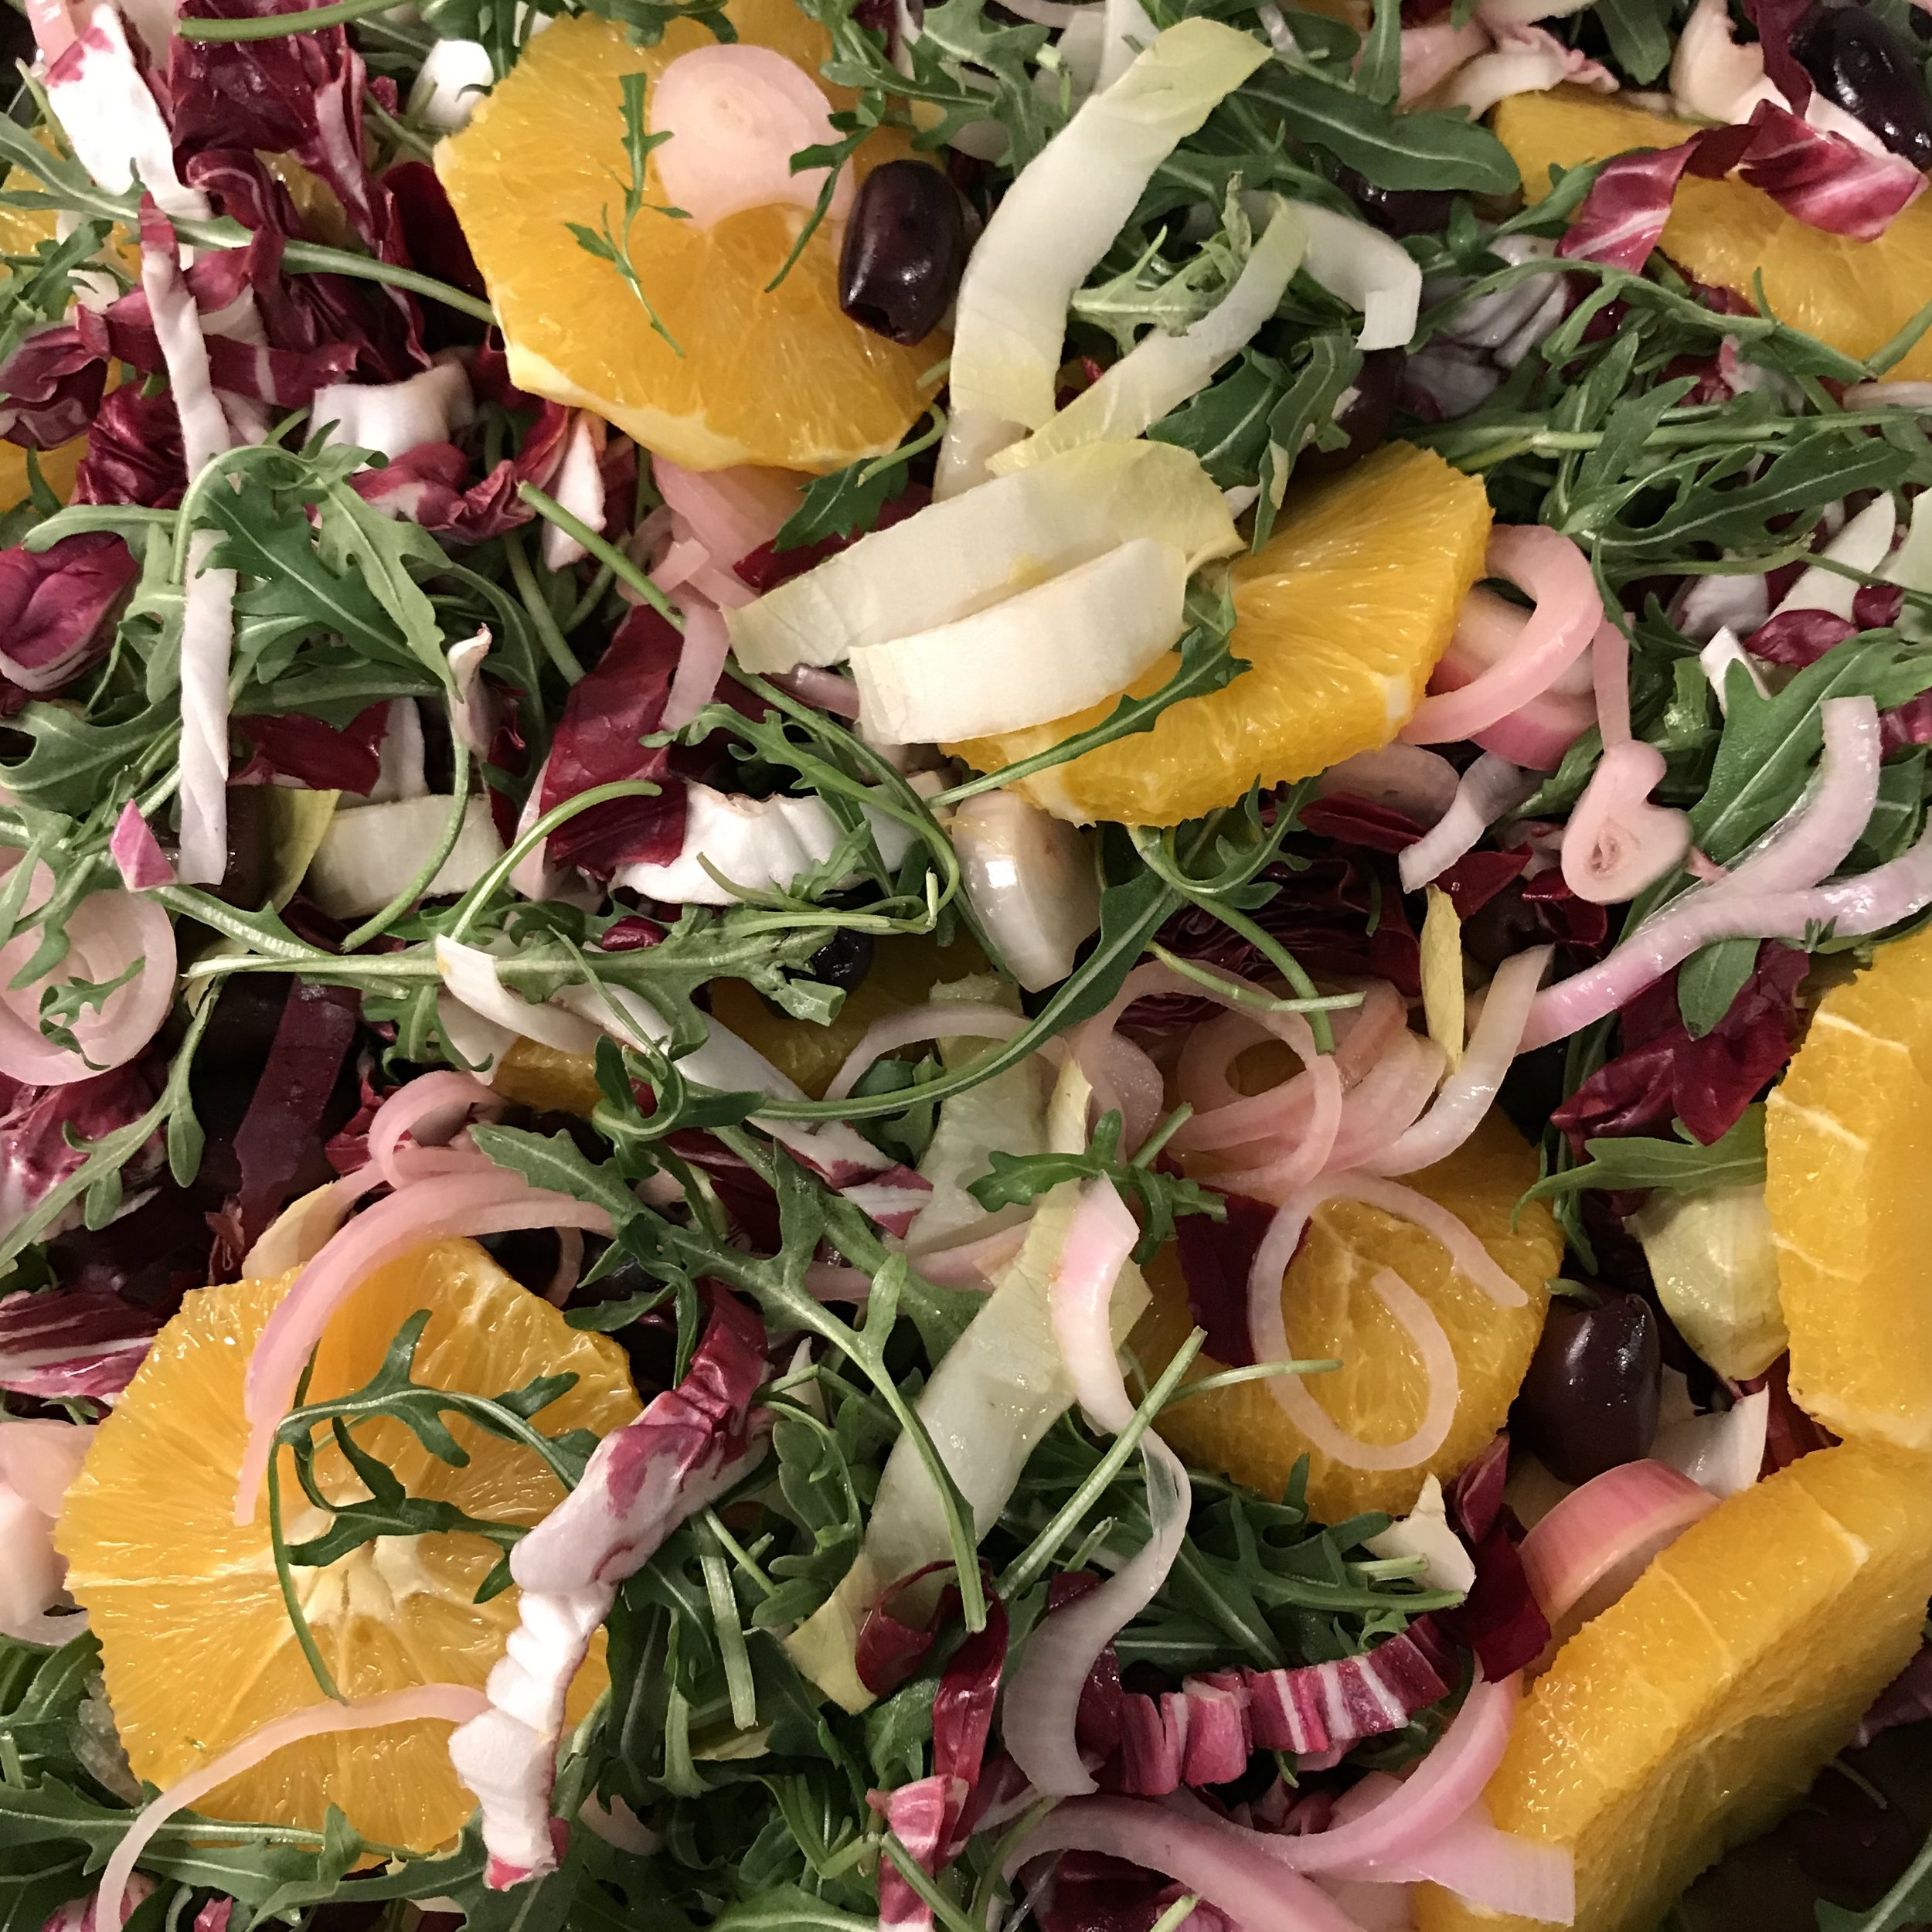 Tricolore Salad with Oranges . Cook Like A Pro . Week 20